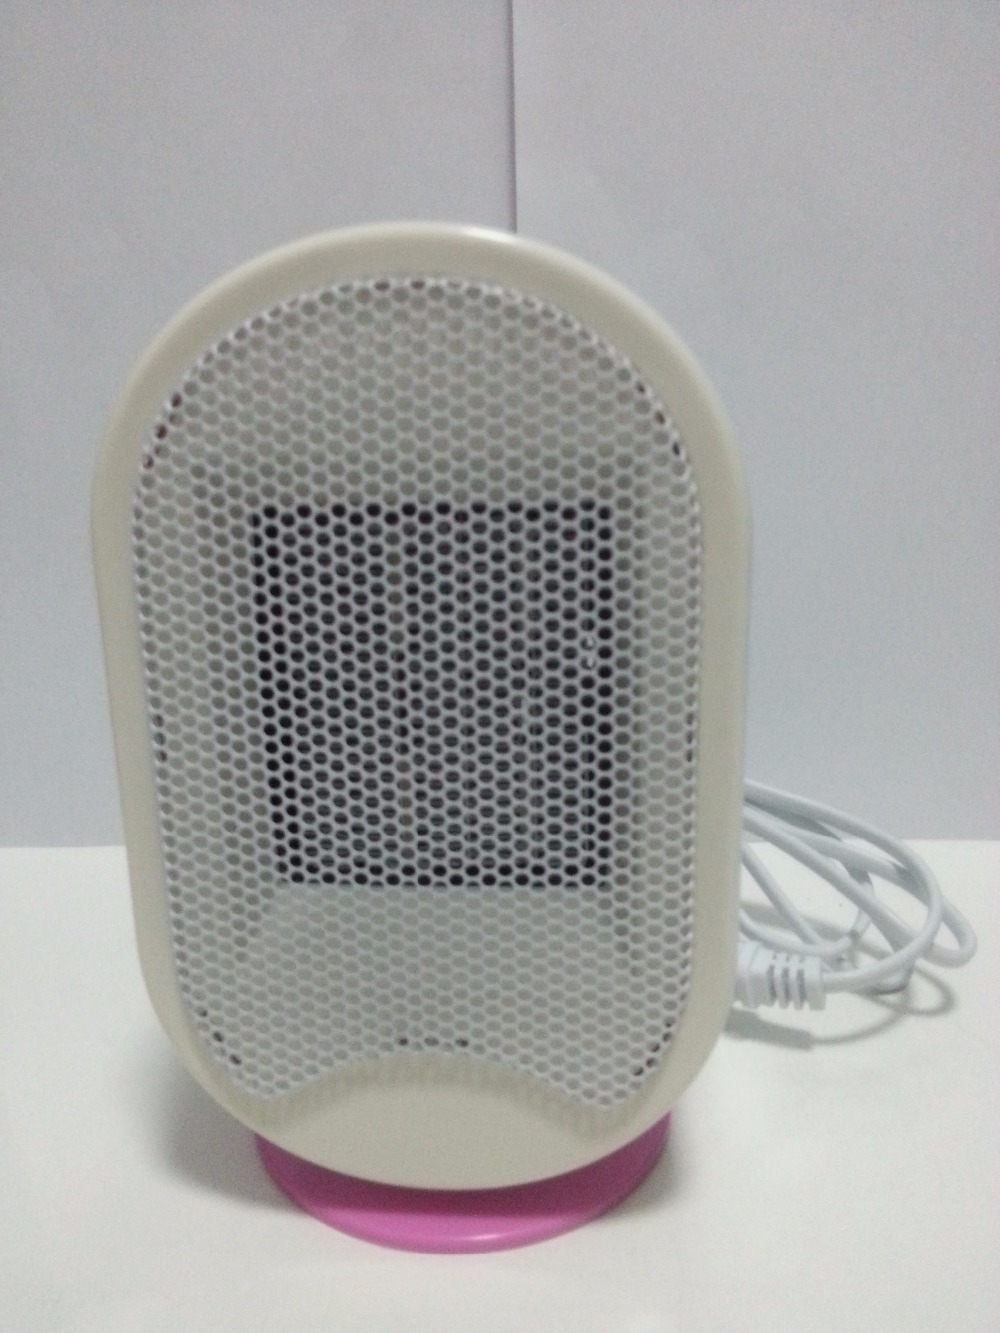 MinF02-10,free shipping,portable heater,Factory directly supply winter hot saling home AC220V ,electric desktop mini heaterMinF02-10,free shipping,portable heater,Factory directly supply winter hot saling home AC220V ,electric desktop mini heater